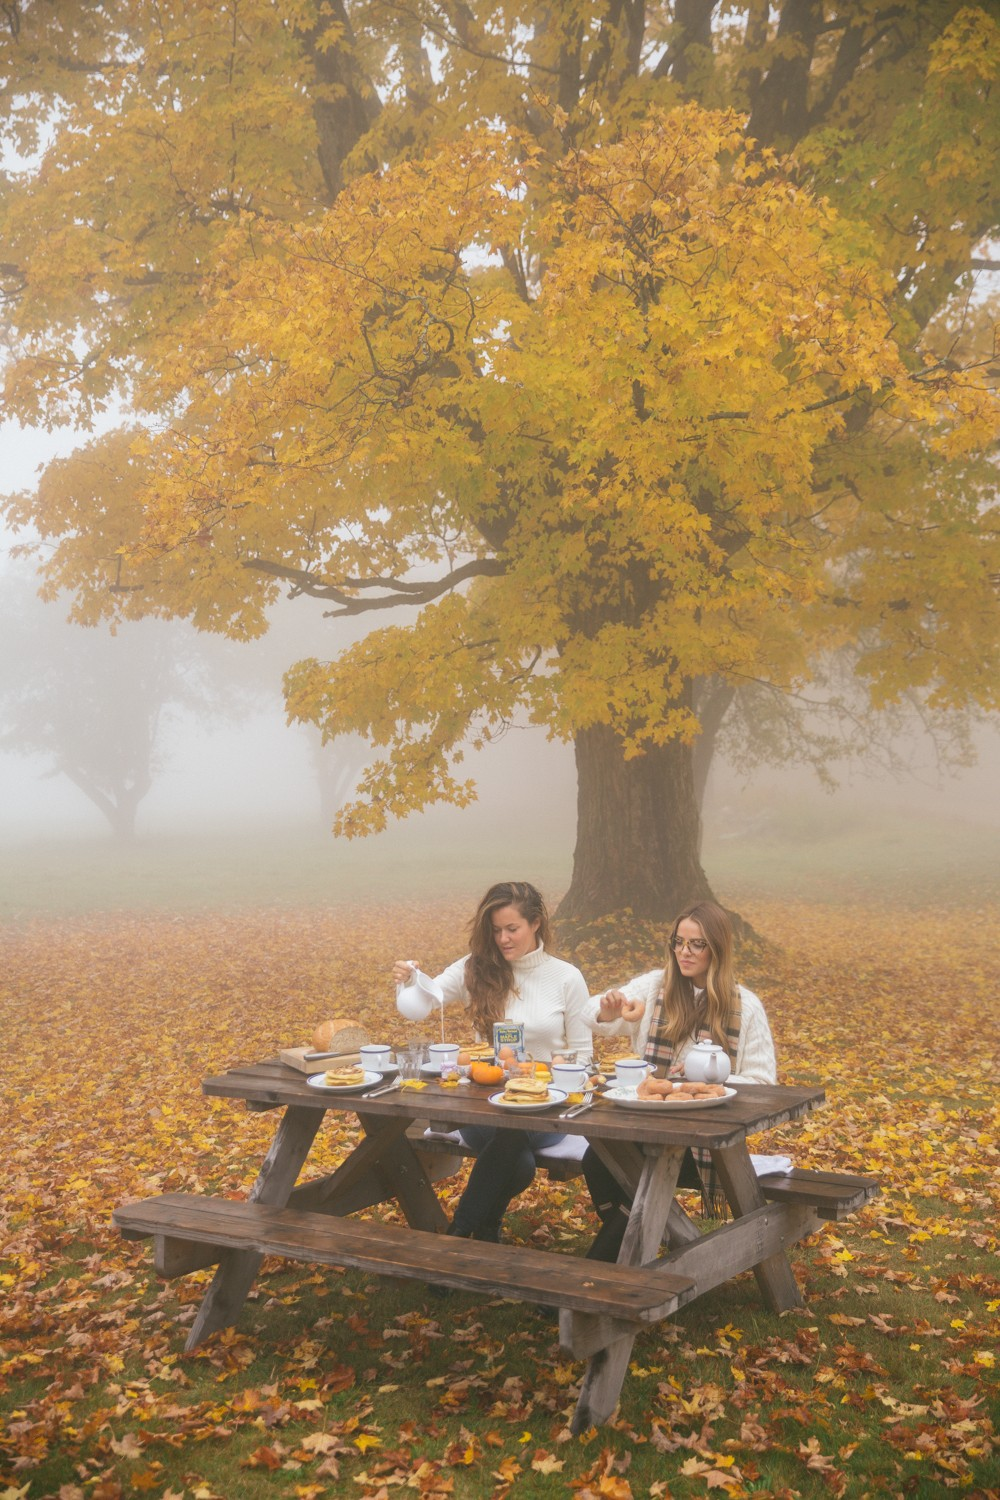 Misty breakfast picnic in the forest